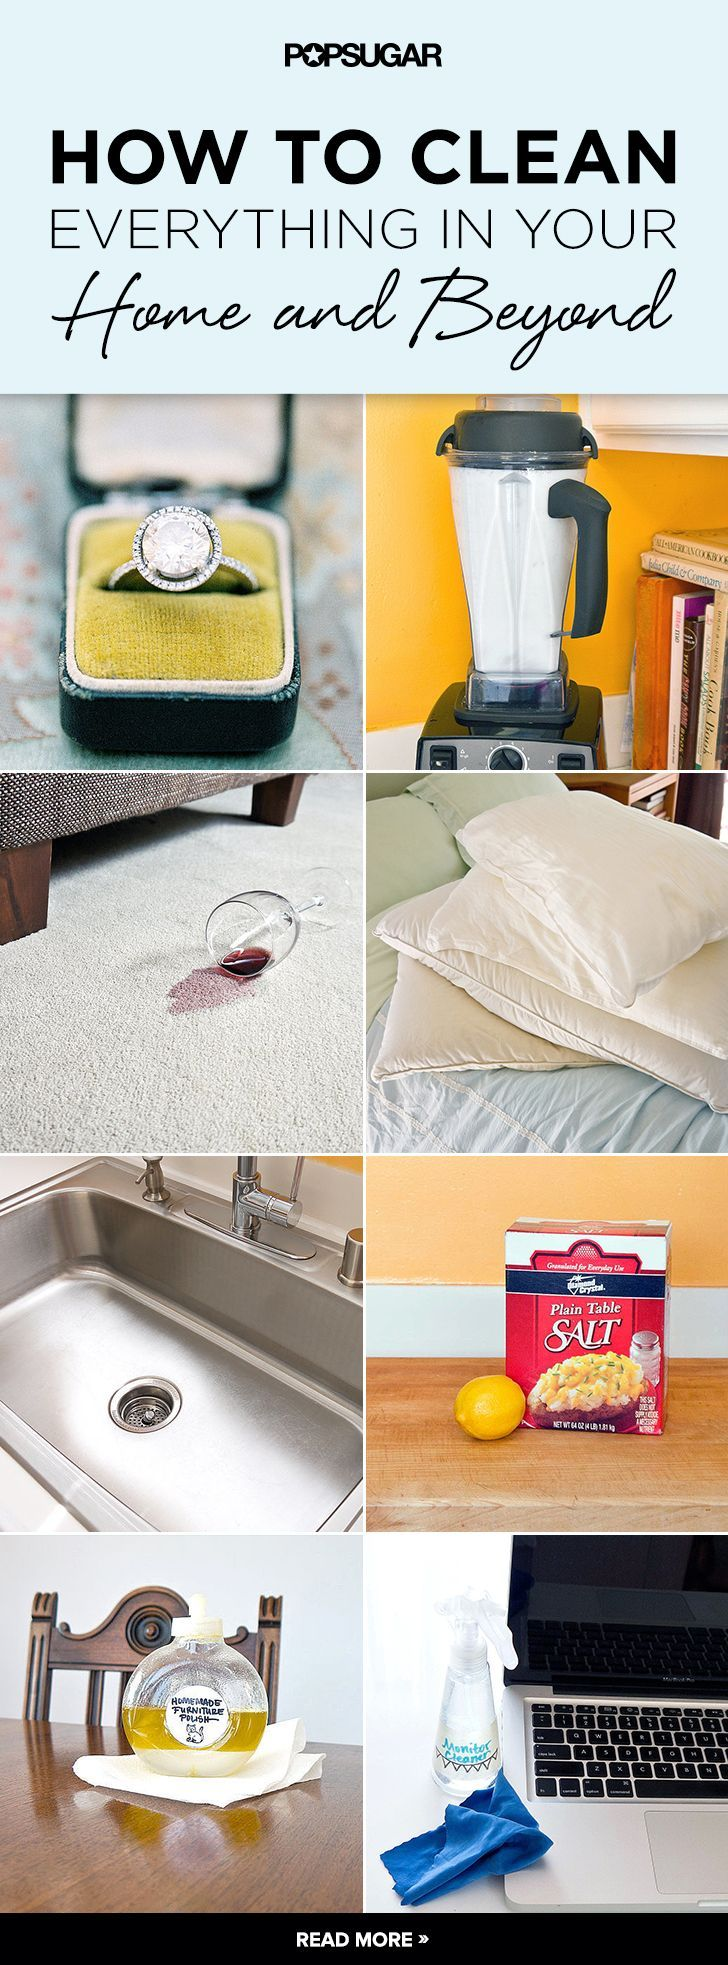 Every room in your apartment or house comes with its own cleaning challenges. From air vents to rusty cooking ware, we've rounded up a cleaning guide for every room and item you could ever want to clean!